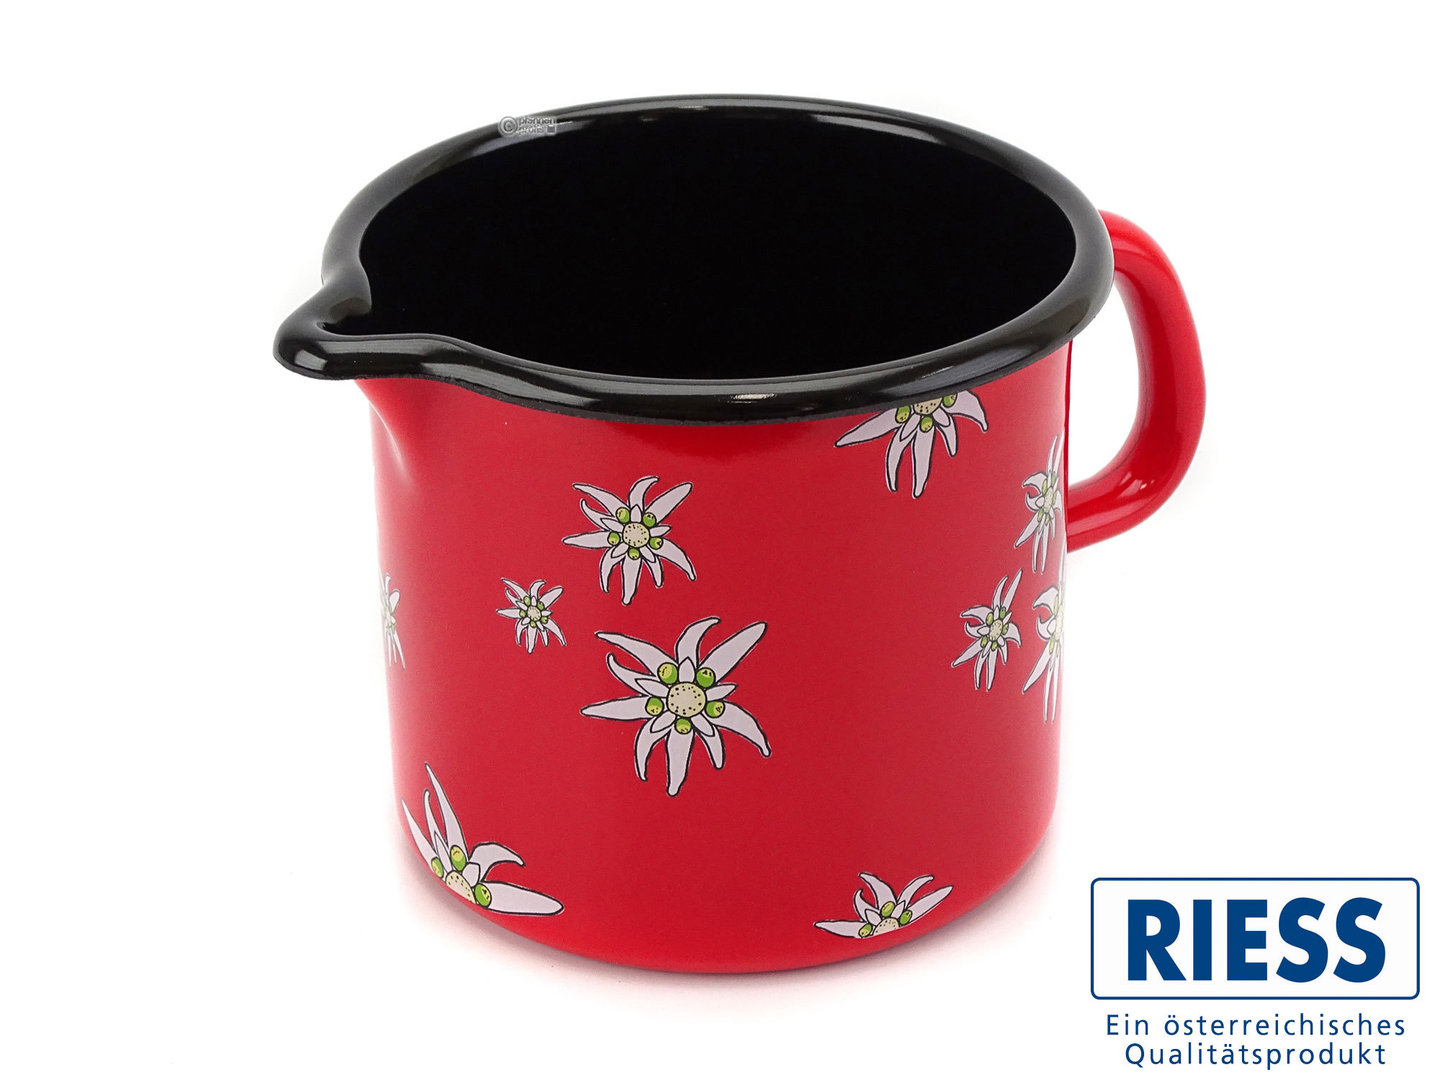 RIESS milk pot enamel edelweiss red 12 cm 1 liter